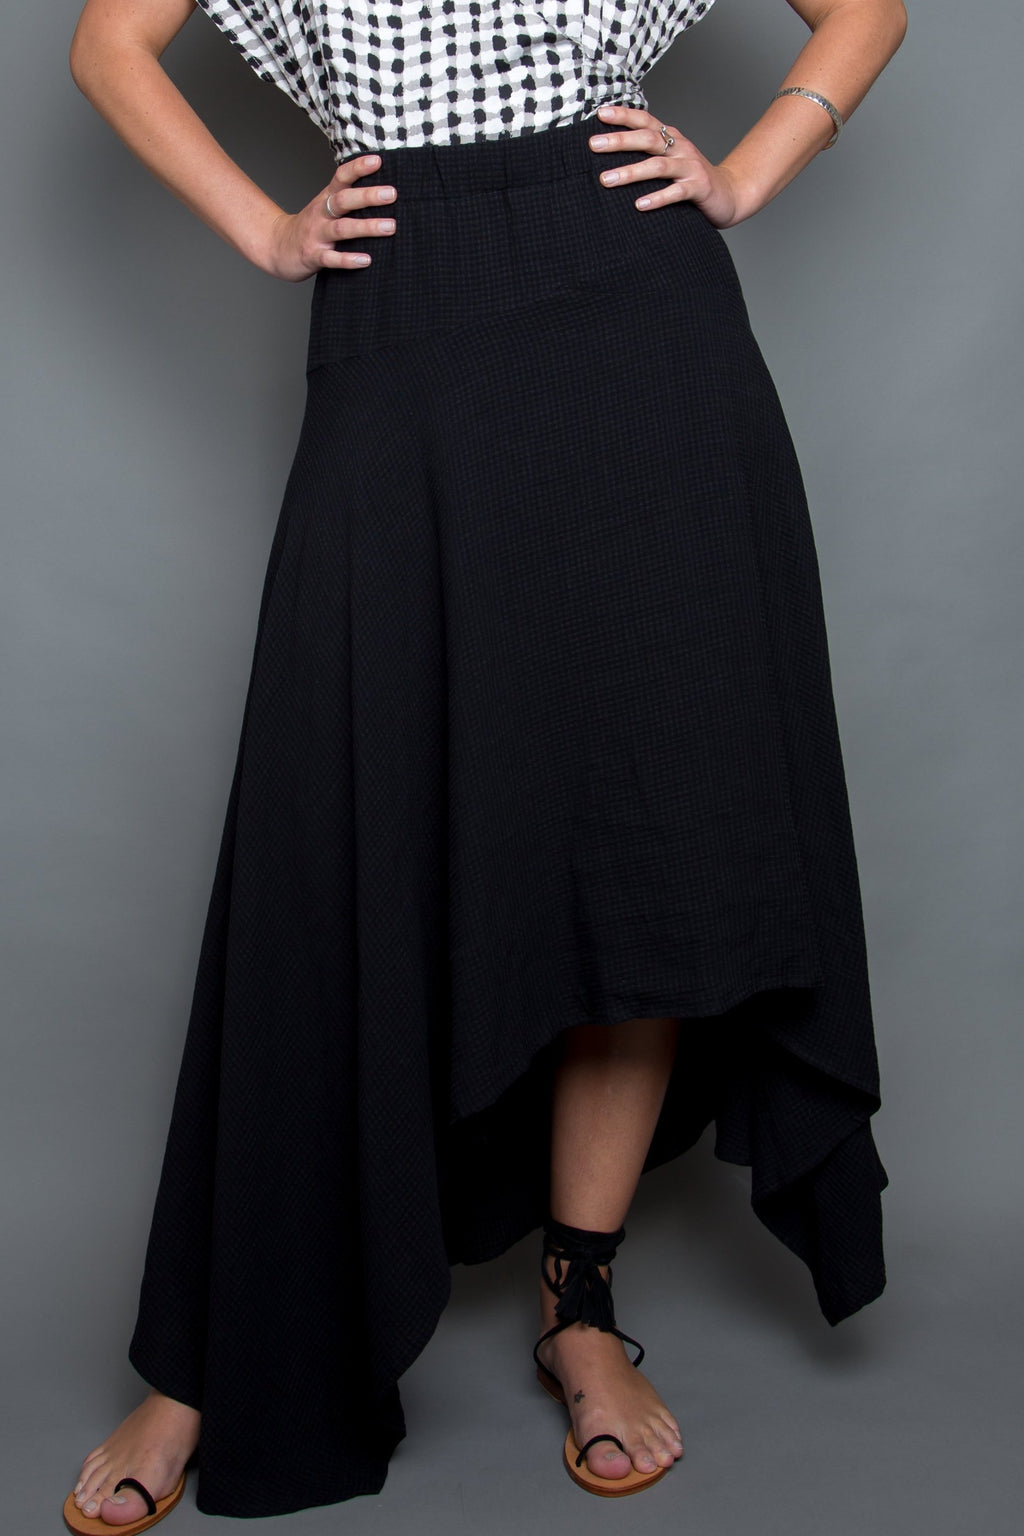 On Time Skirt in Black Gardenia